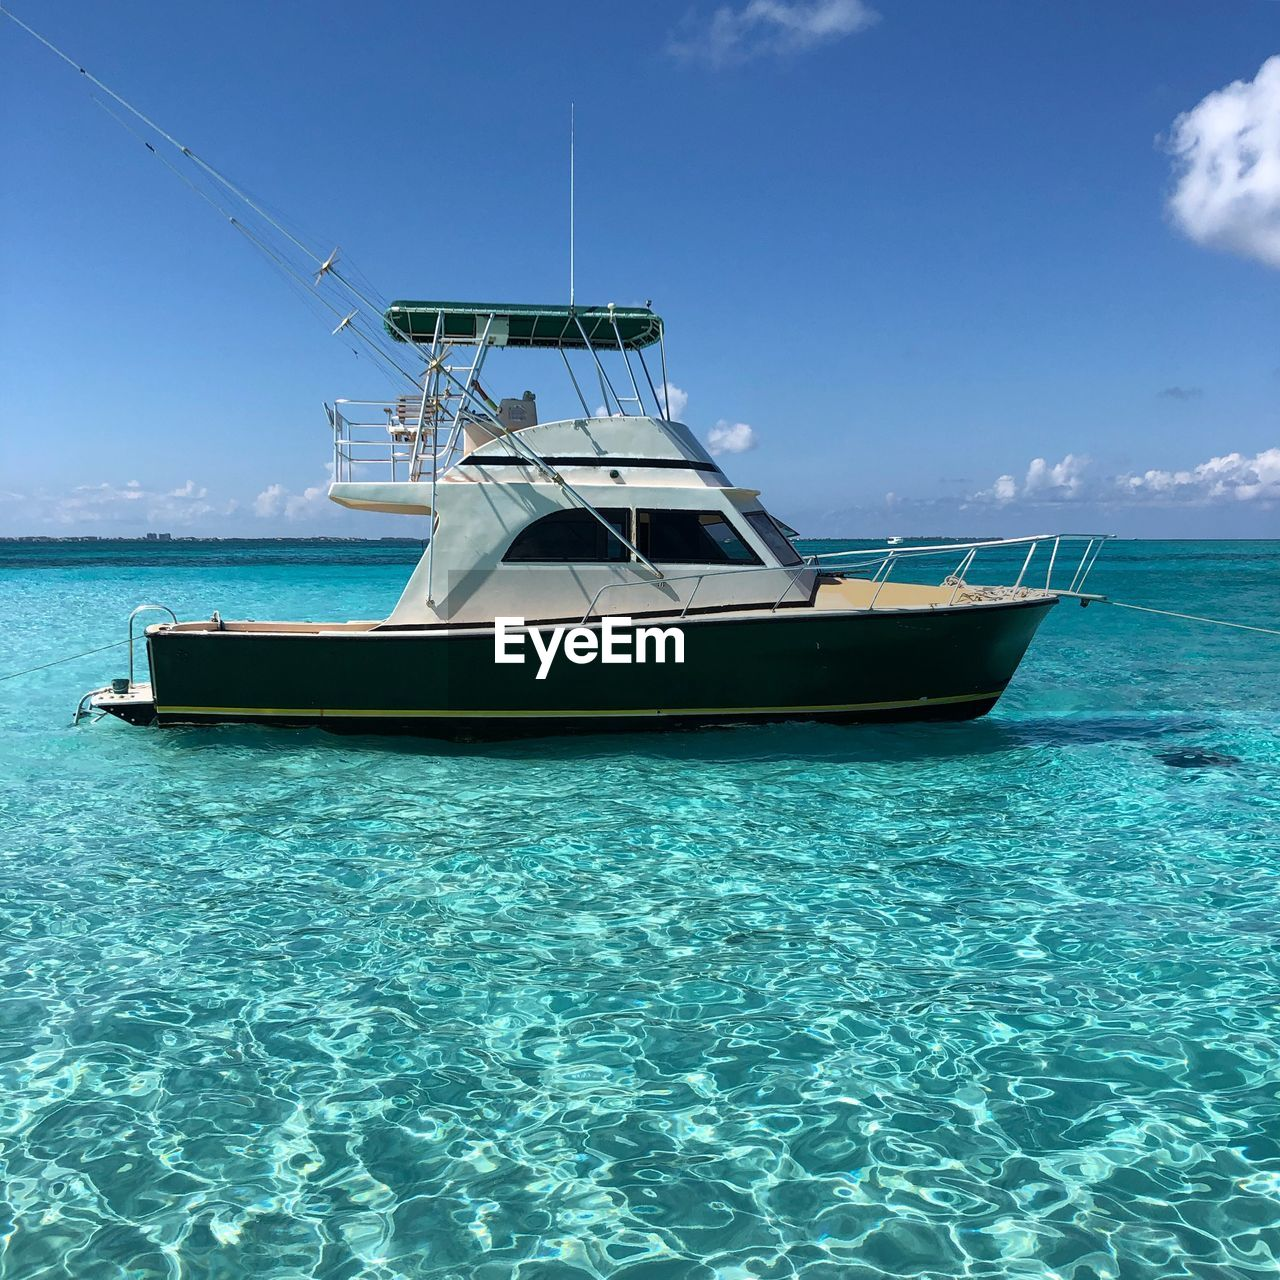 water, sea, nautical vessel, sky, nature, transportation, mode of transportation, scenics - nature, blue, beauty in nature, waterfront, day, cloud - sky, travel, sunlight, moored, horizon over water, no people, outdoors, turquoise colored, yacht, sailboat, anchored